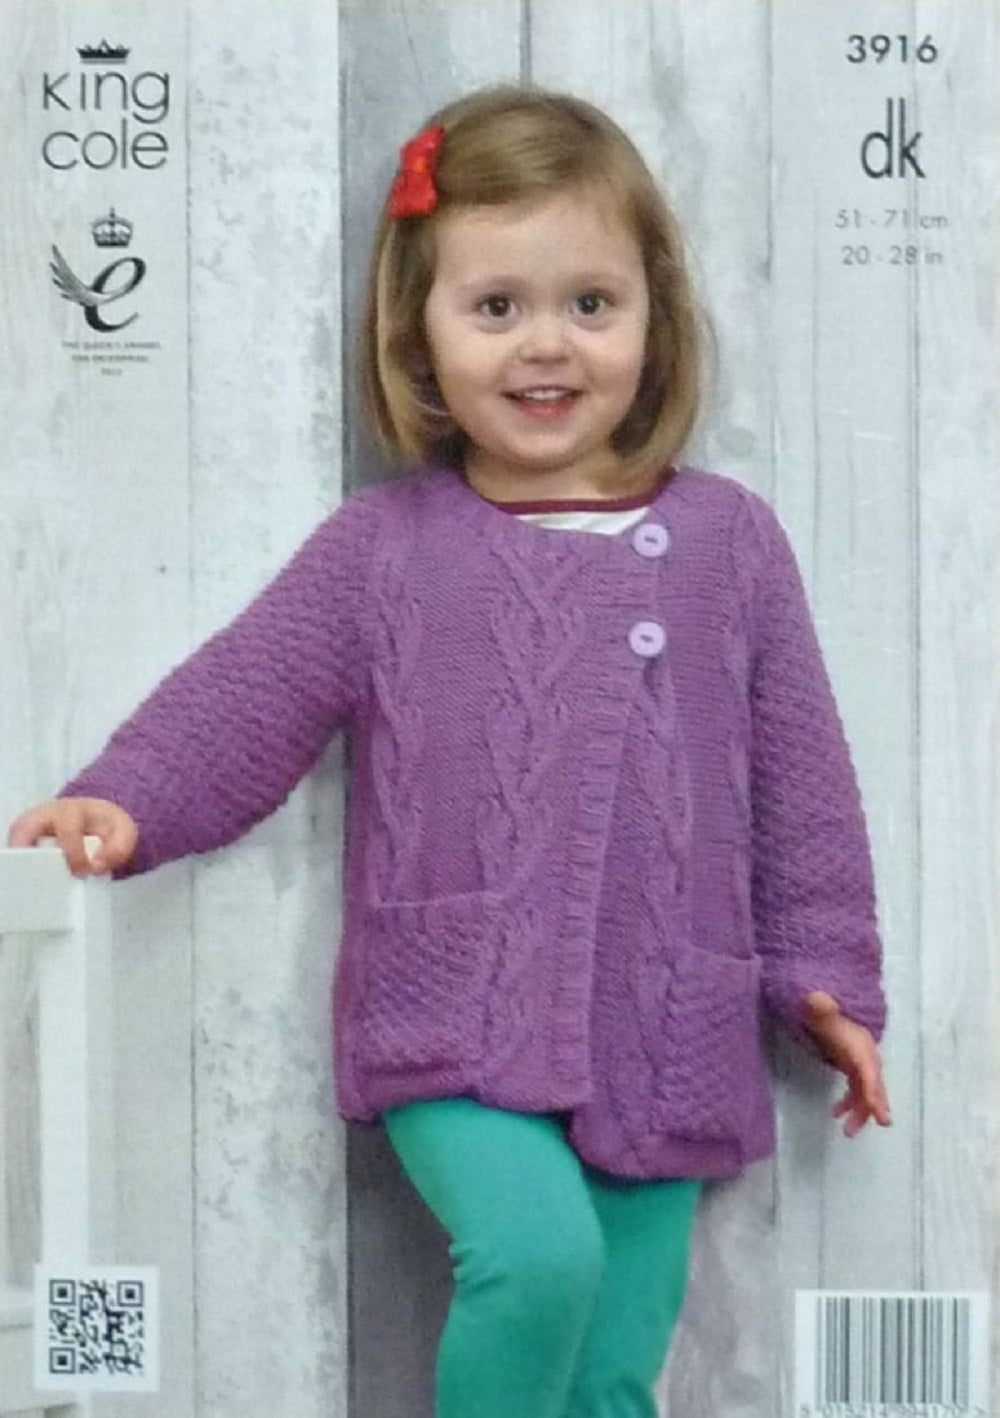 King Cole 3916 Childs DK Sweater Cardigan Knitting Pattern